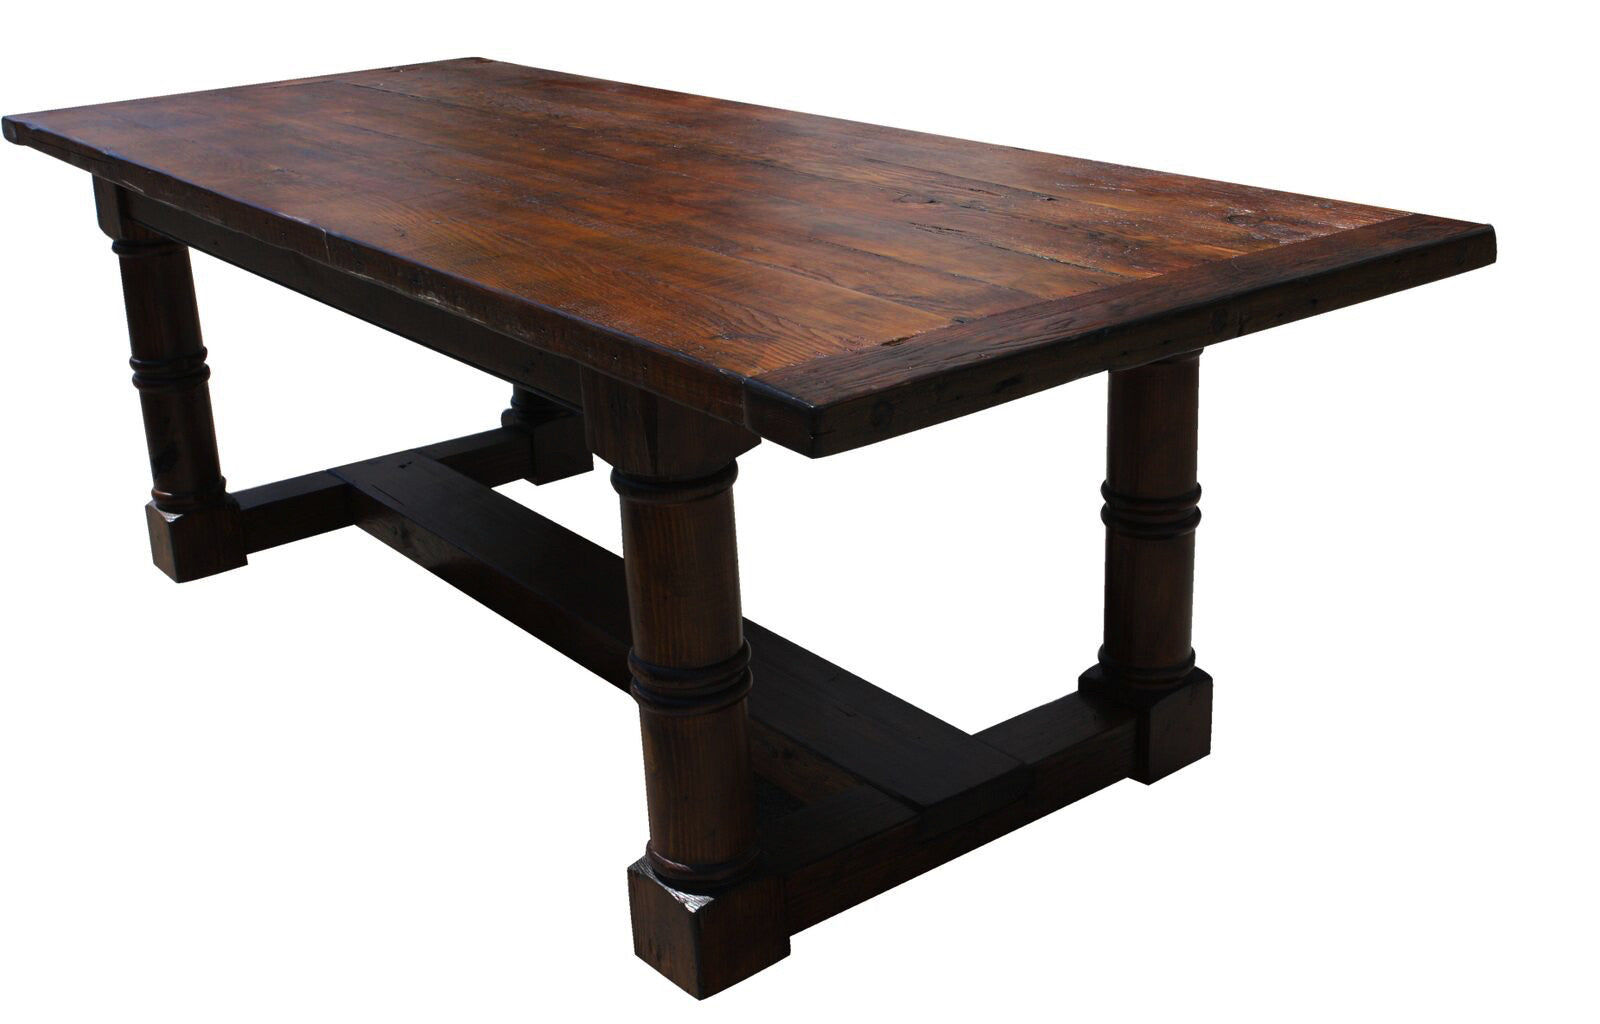 Modern Custom Hand Crafted Table Made from Reclaimed Wood